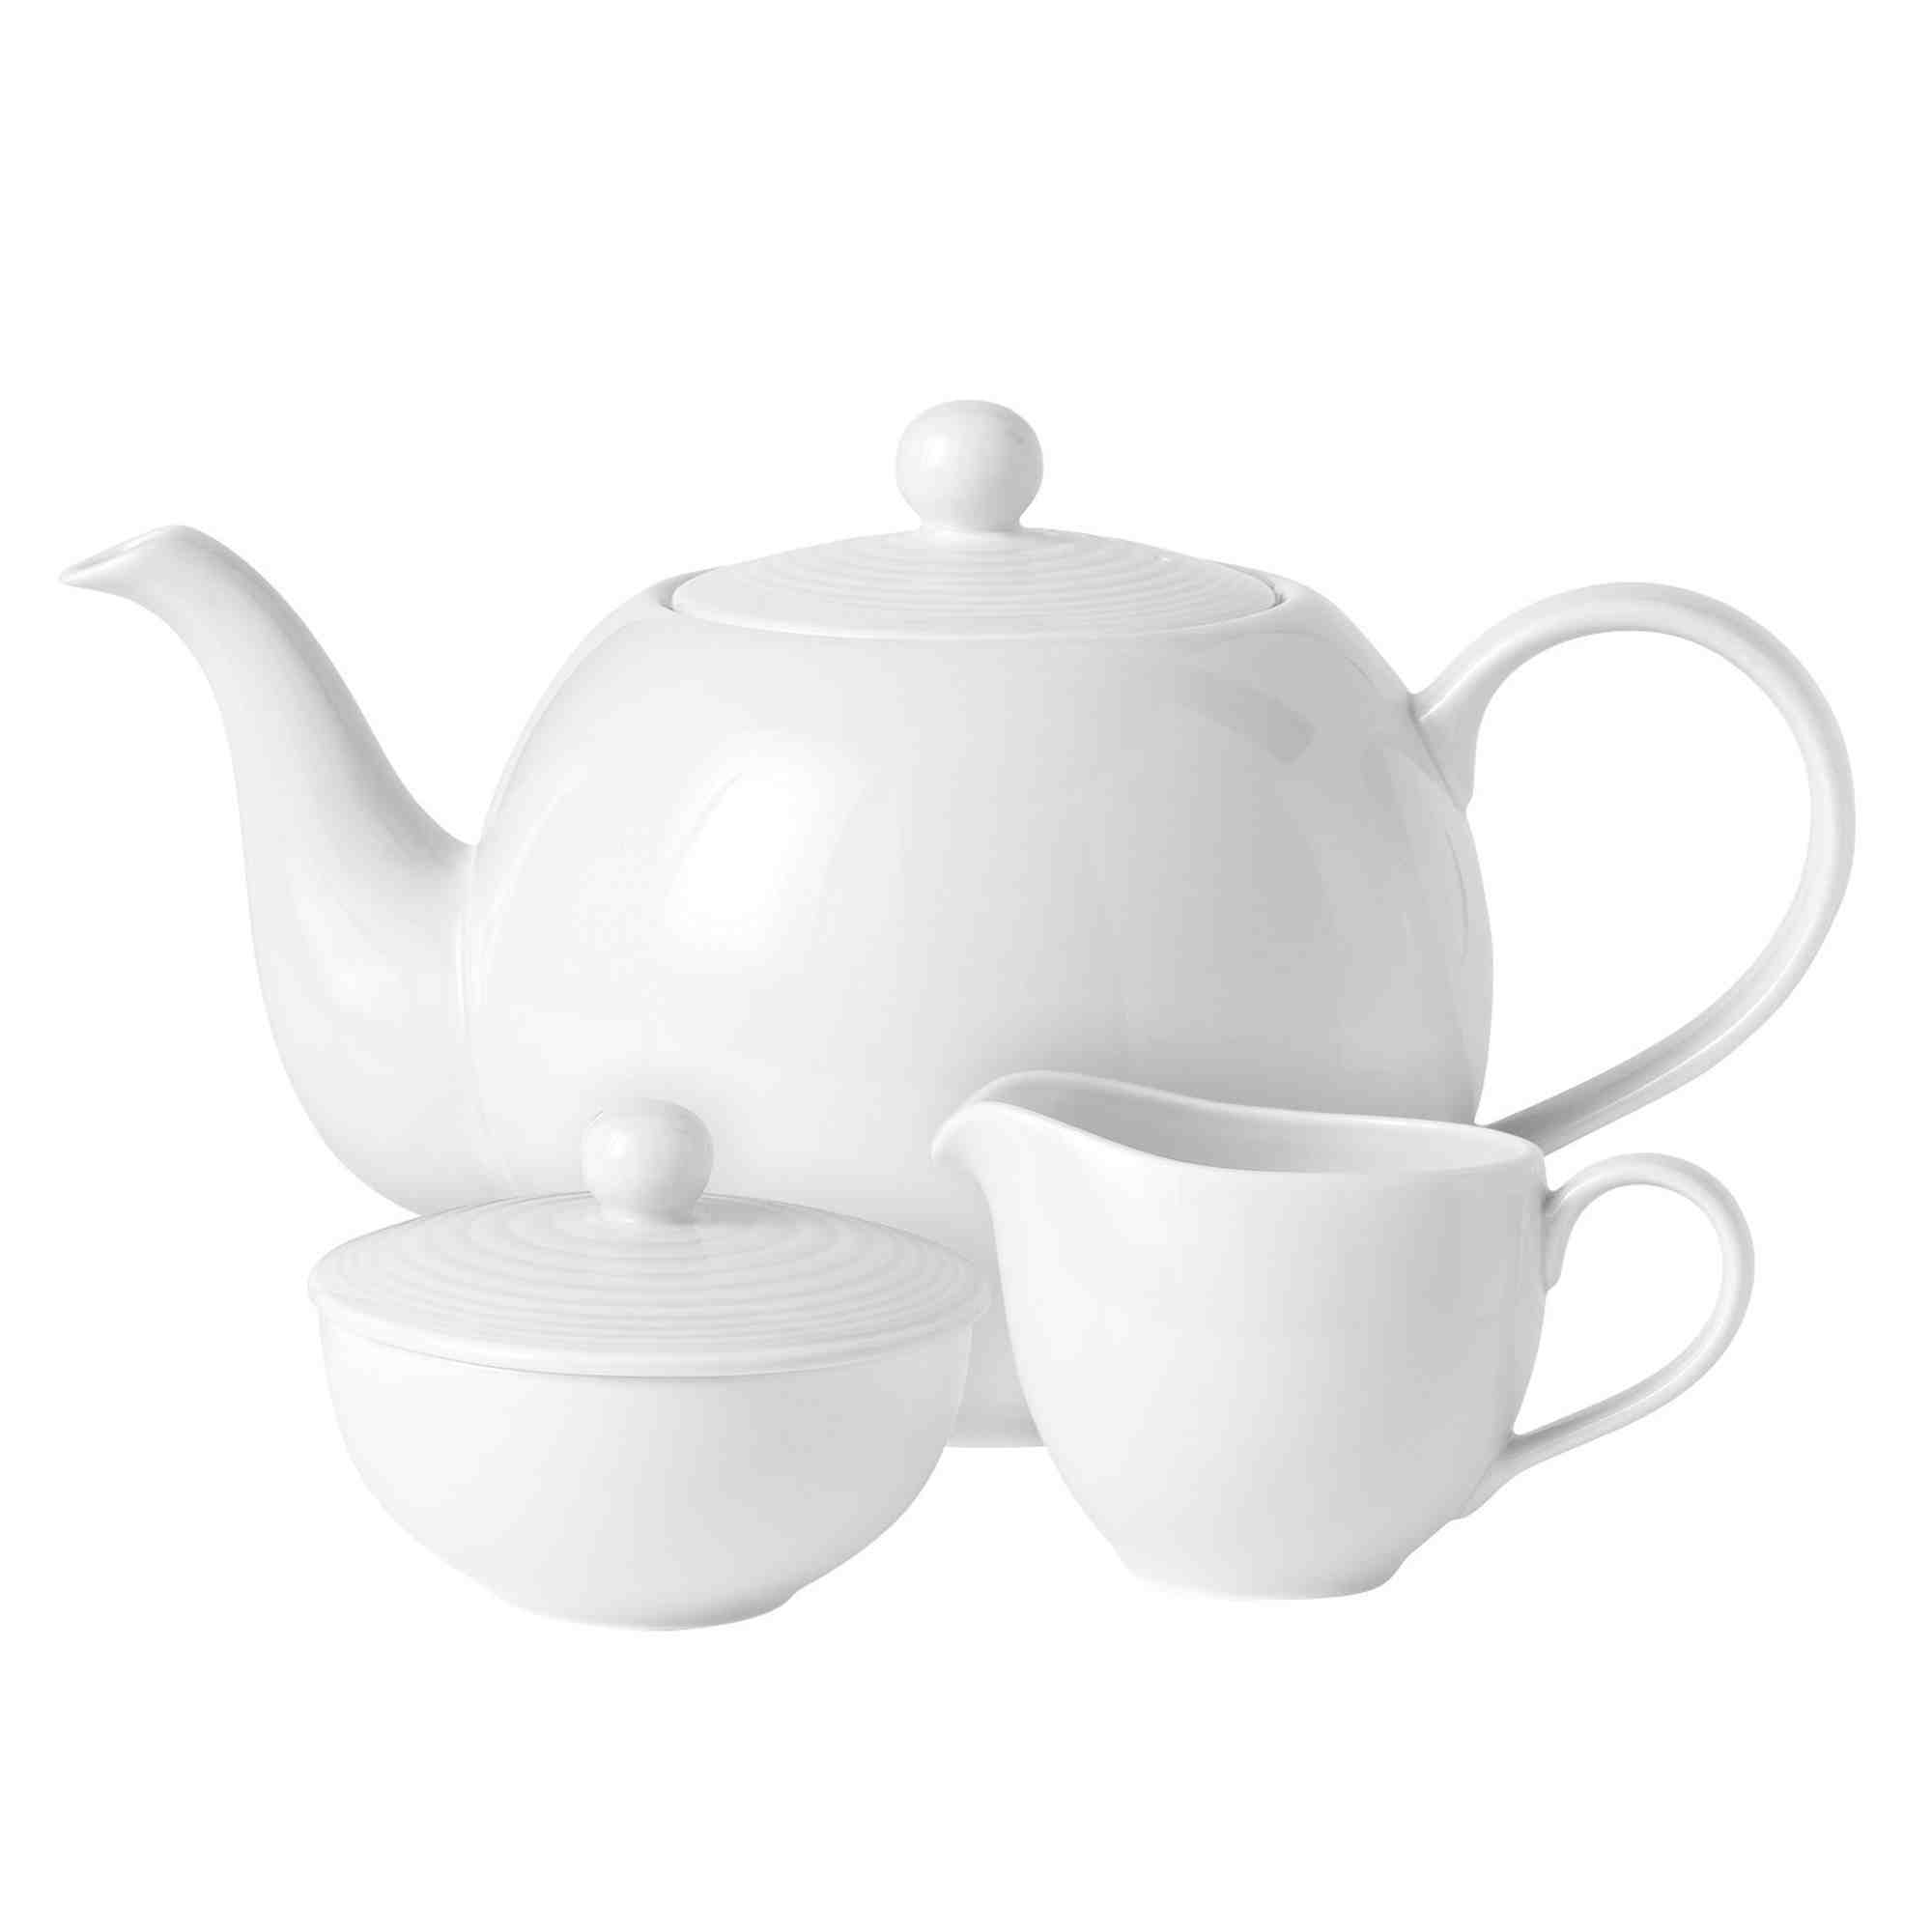 Gordon Ramsay MAZE 3pc Beverage Tea Set